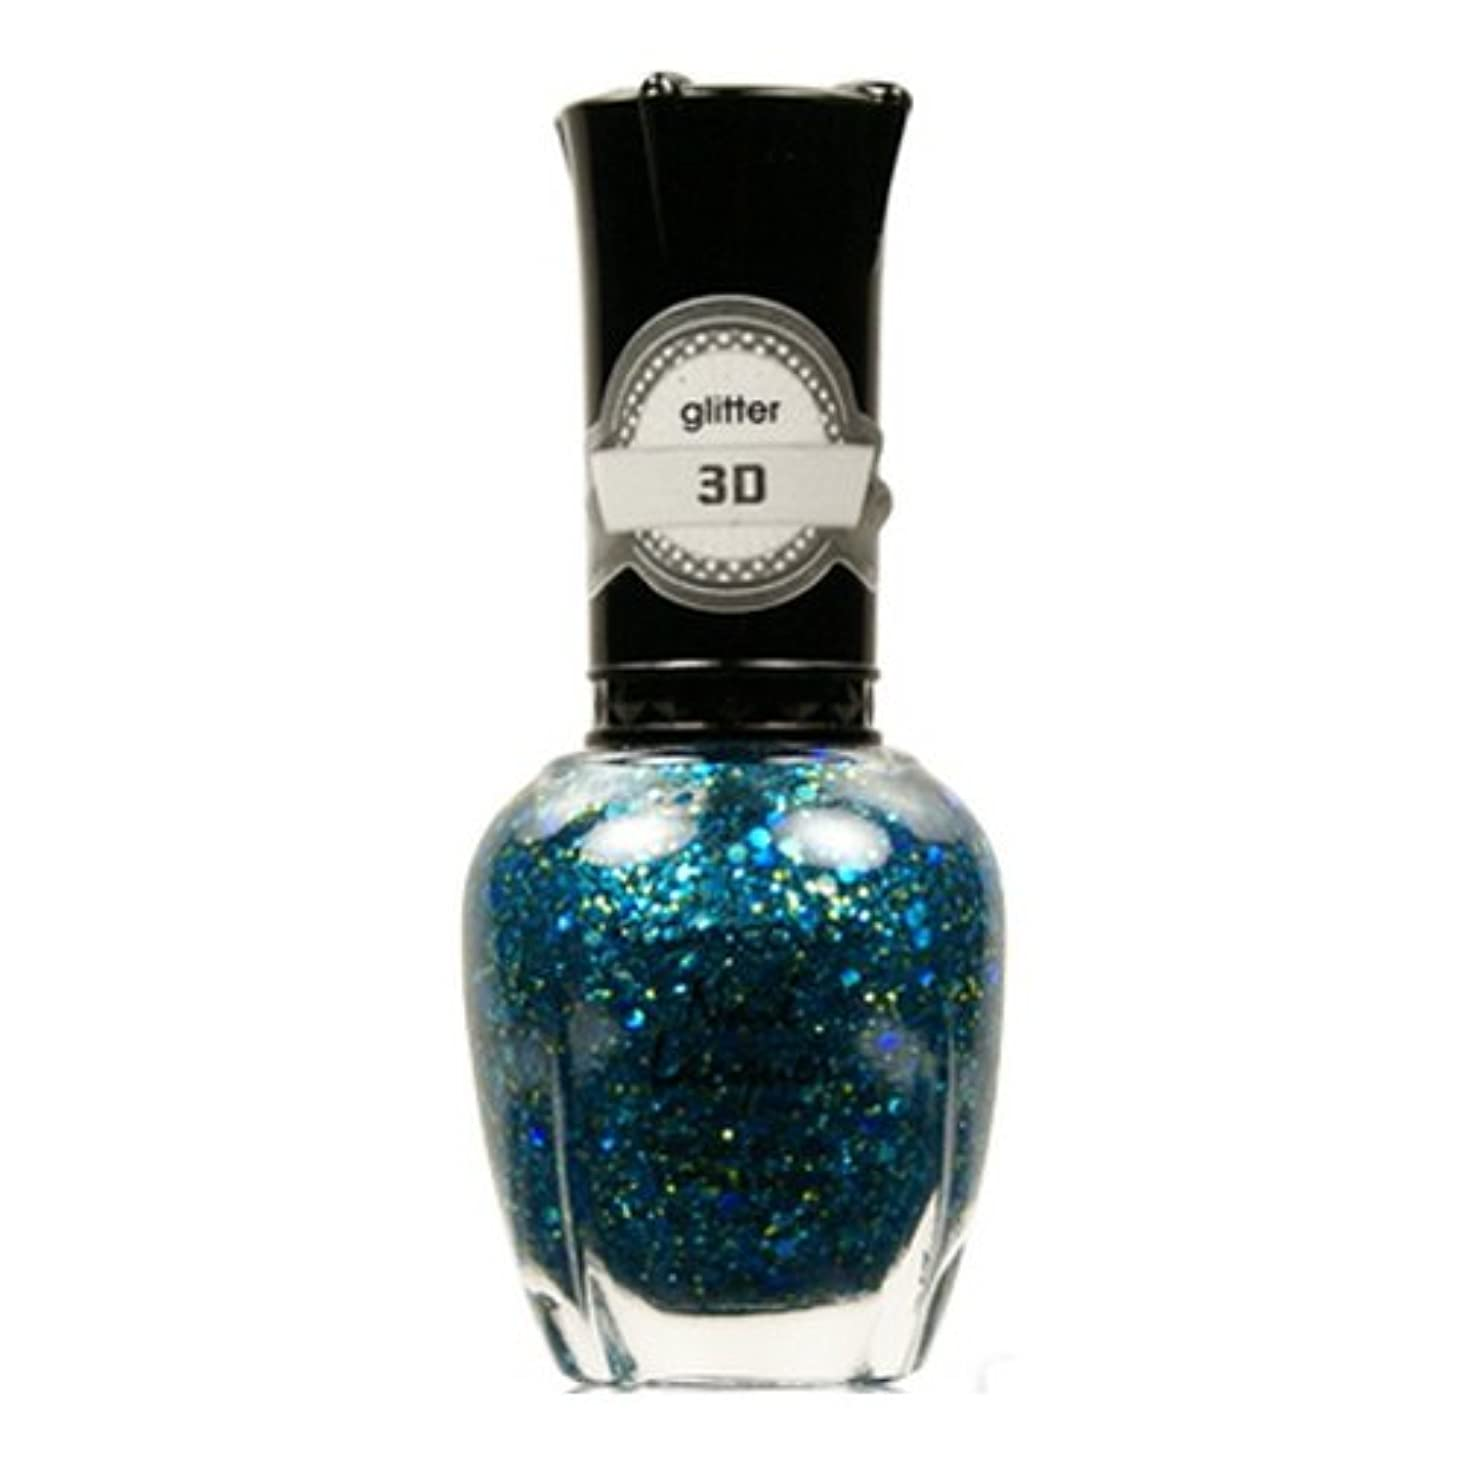 カフェテリア時代遅れ変装した(6 Pack) KLEANCOLOR 3D Nail Lacquer - Luv U TEAL I Find Someone Better (並行輸入品)